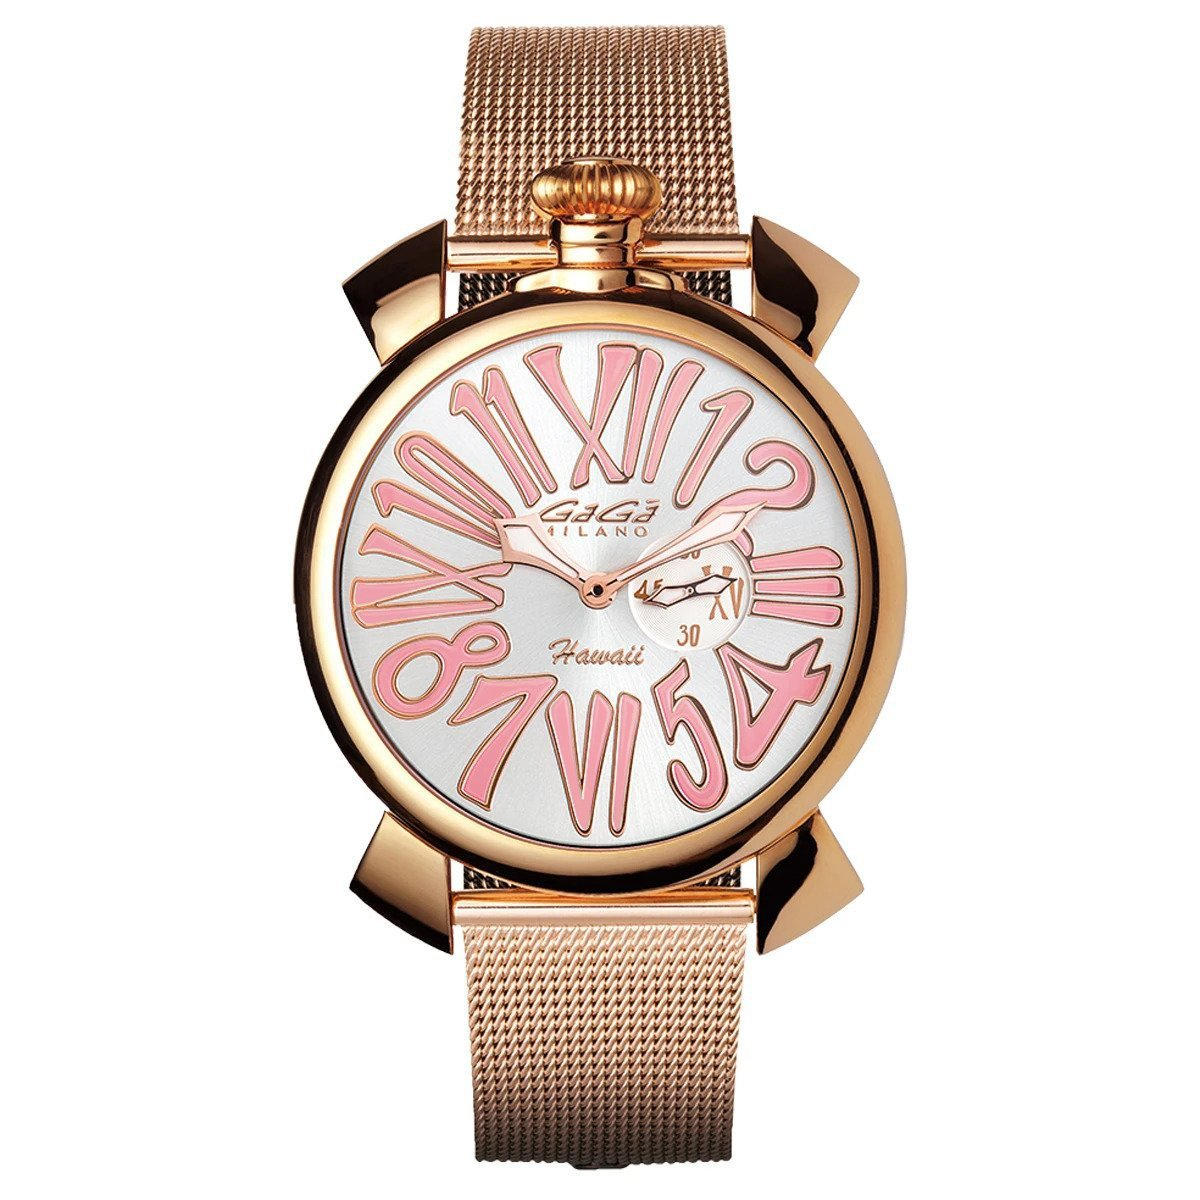 Gaga Milano Slim 46mm Ladies Watch Hawaii Rose Gold - Watches & Crystals